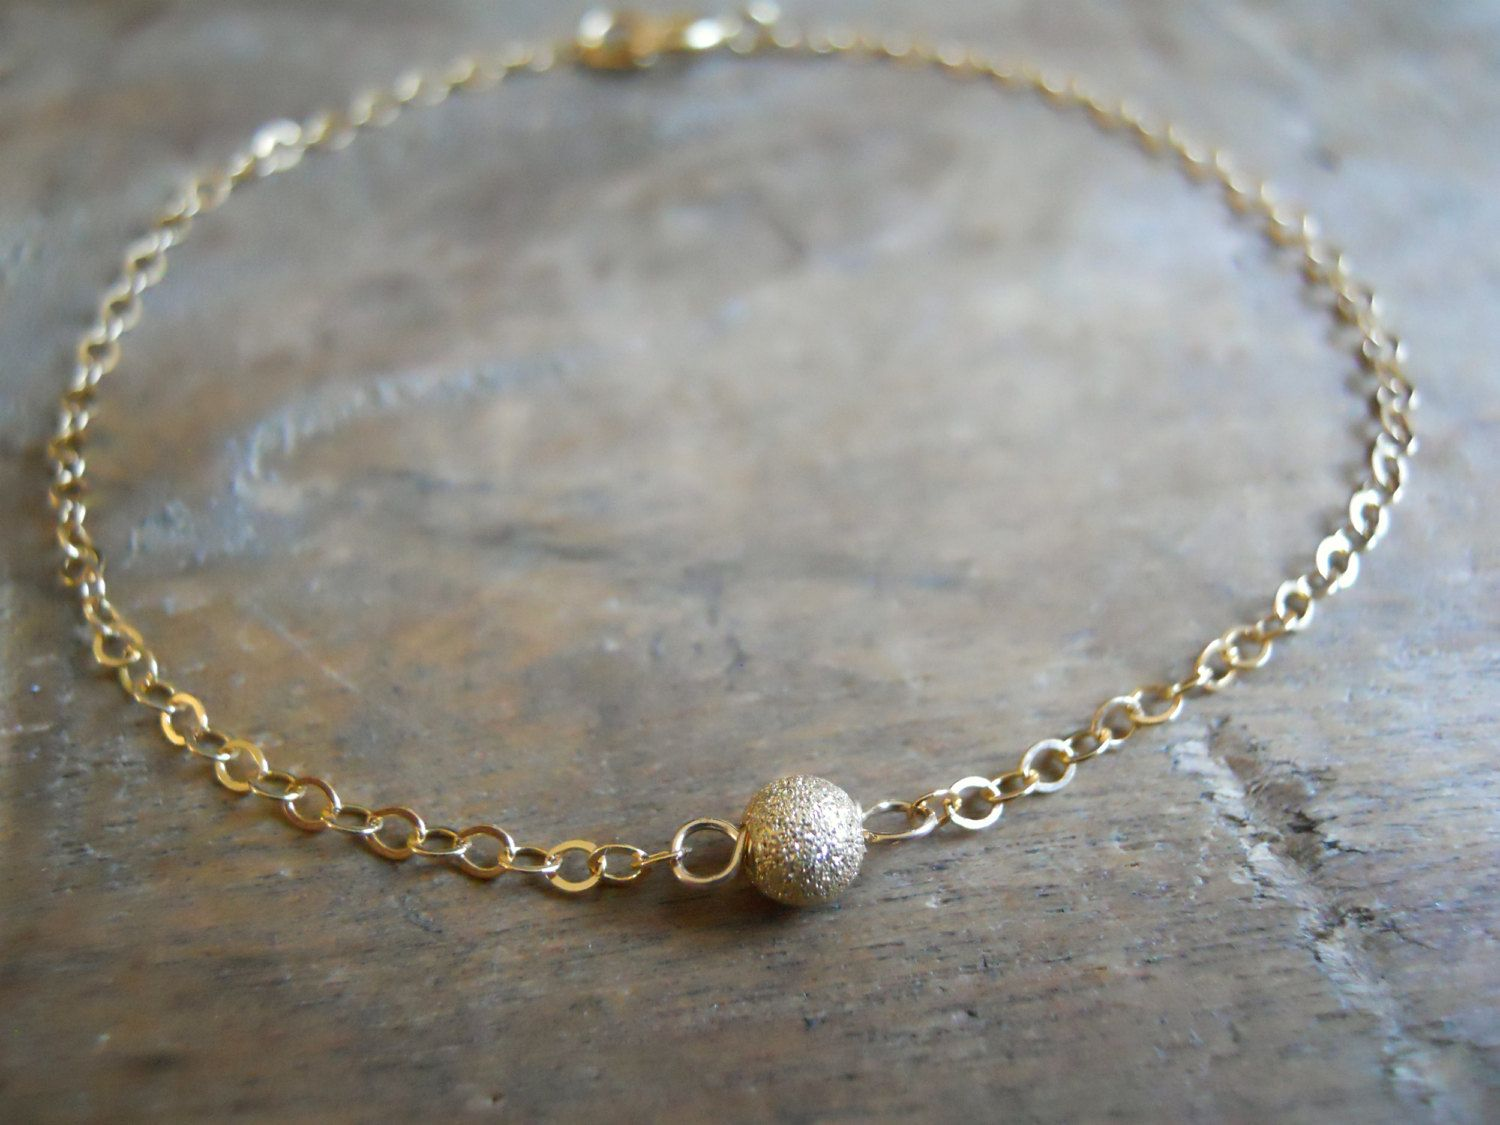 p bridesmaids january delicate for wife garnet birthstone chain il fullxfull sister dainty gold bracelet her jewelry